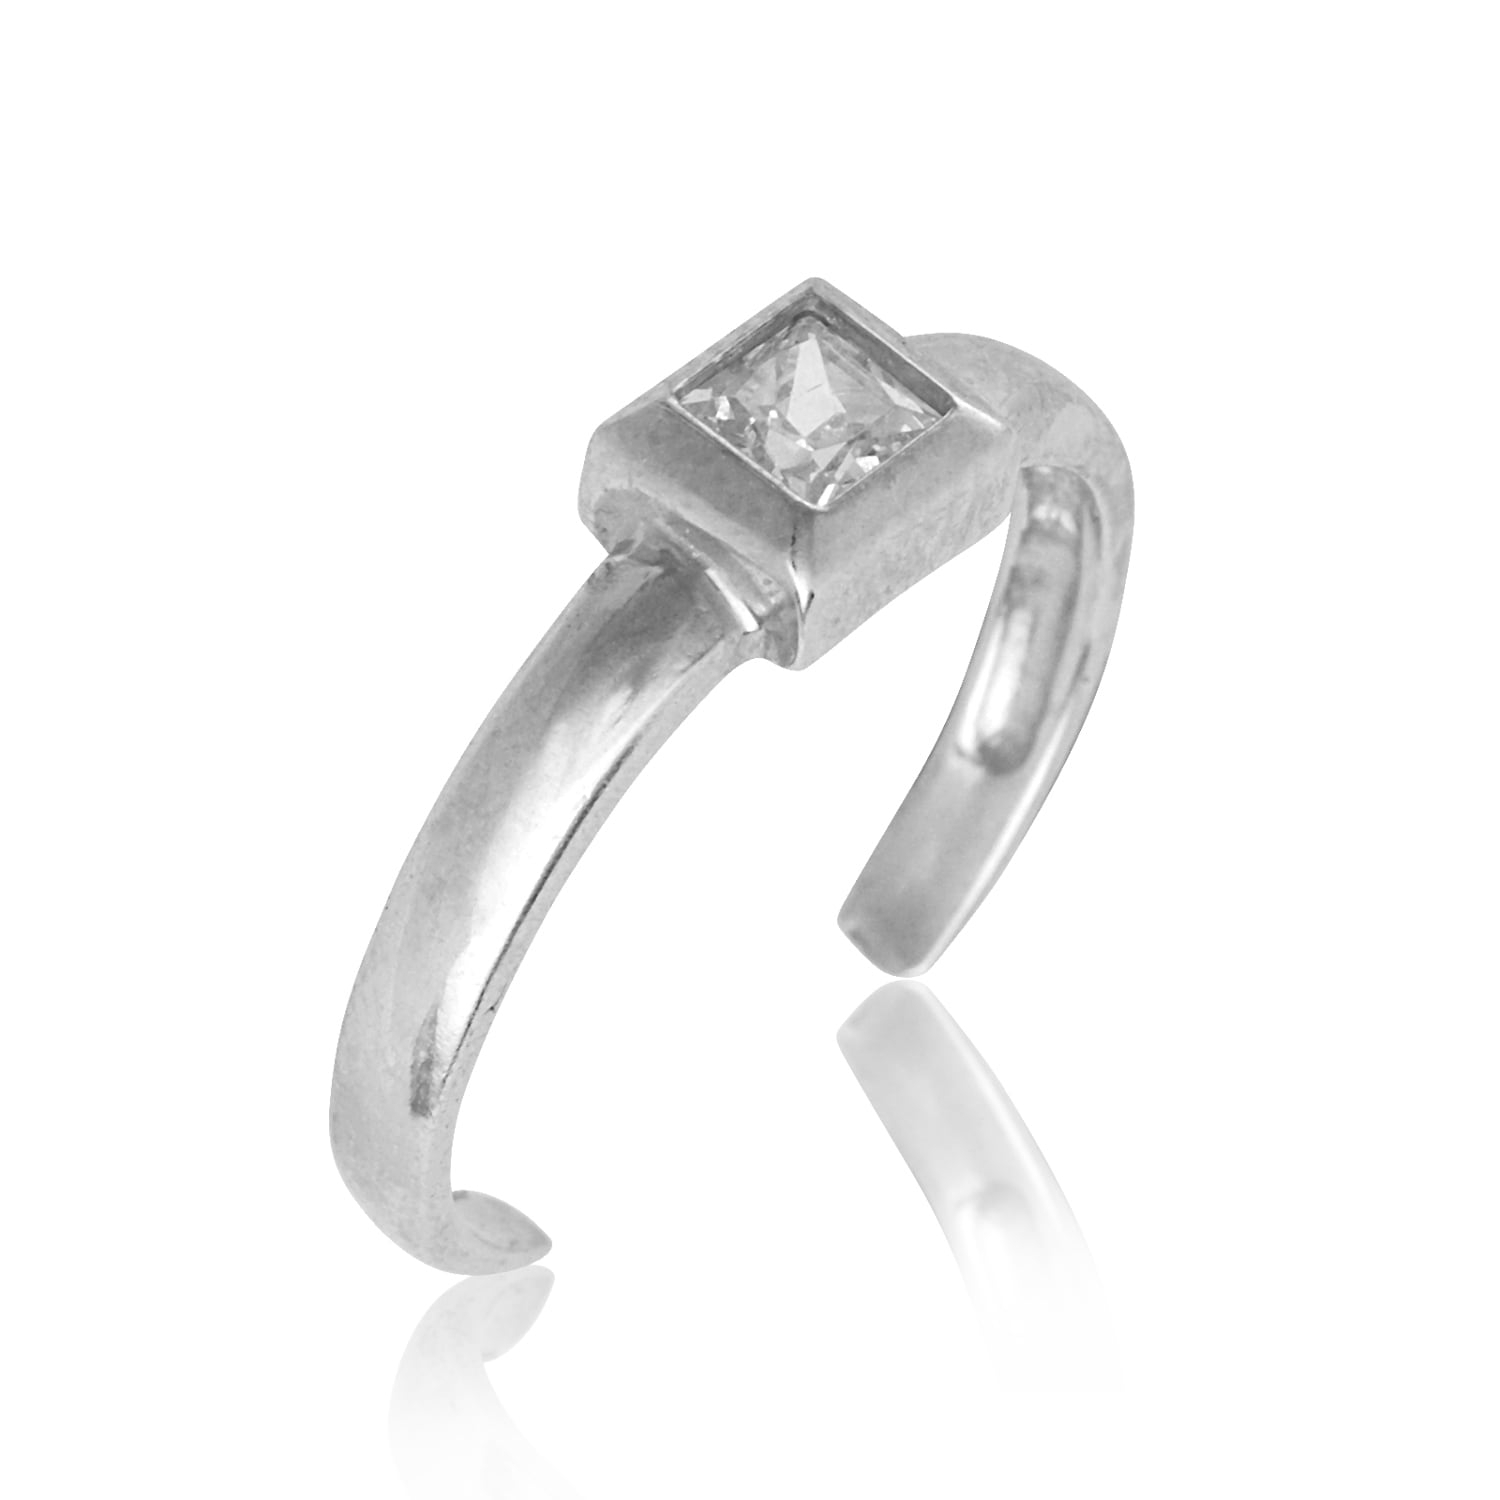 14K Yellow Or White Gold Adjustable Princess Cut Cubic Zirconia Regarding 2017 Toe Rings With Cubic Zirconia (View 5 of 15)